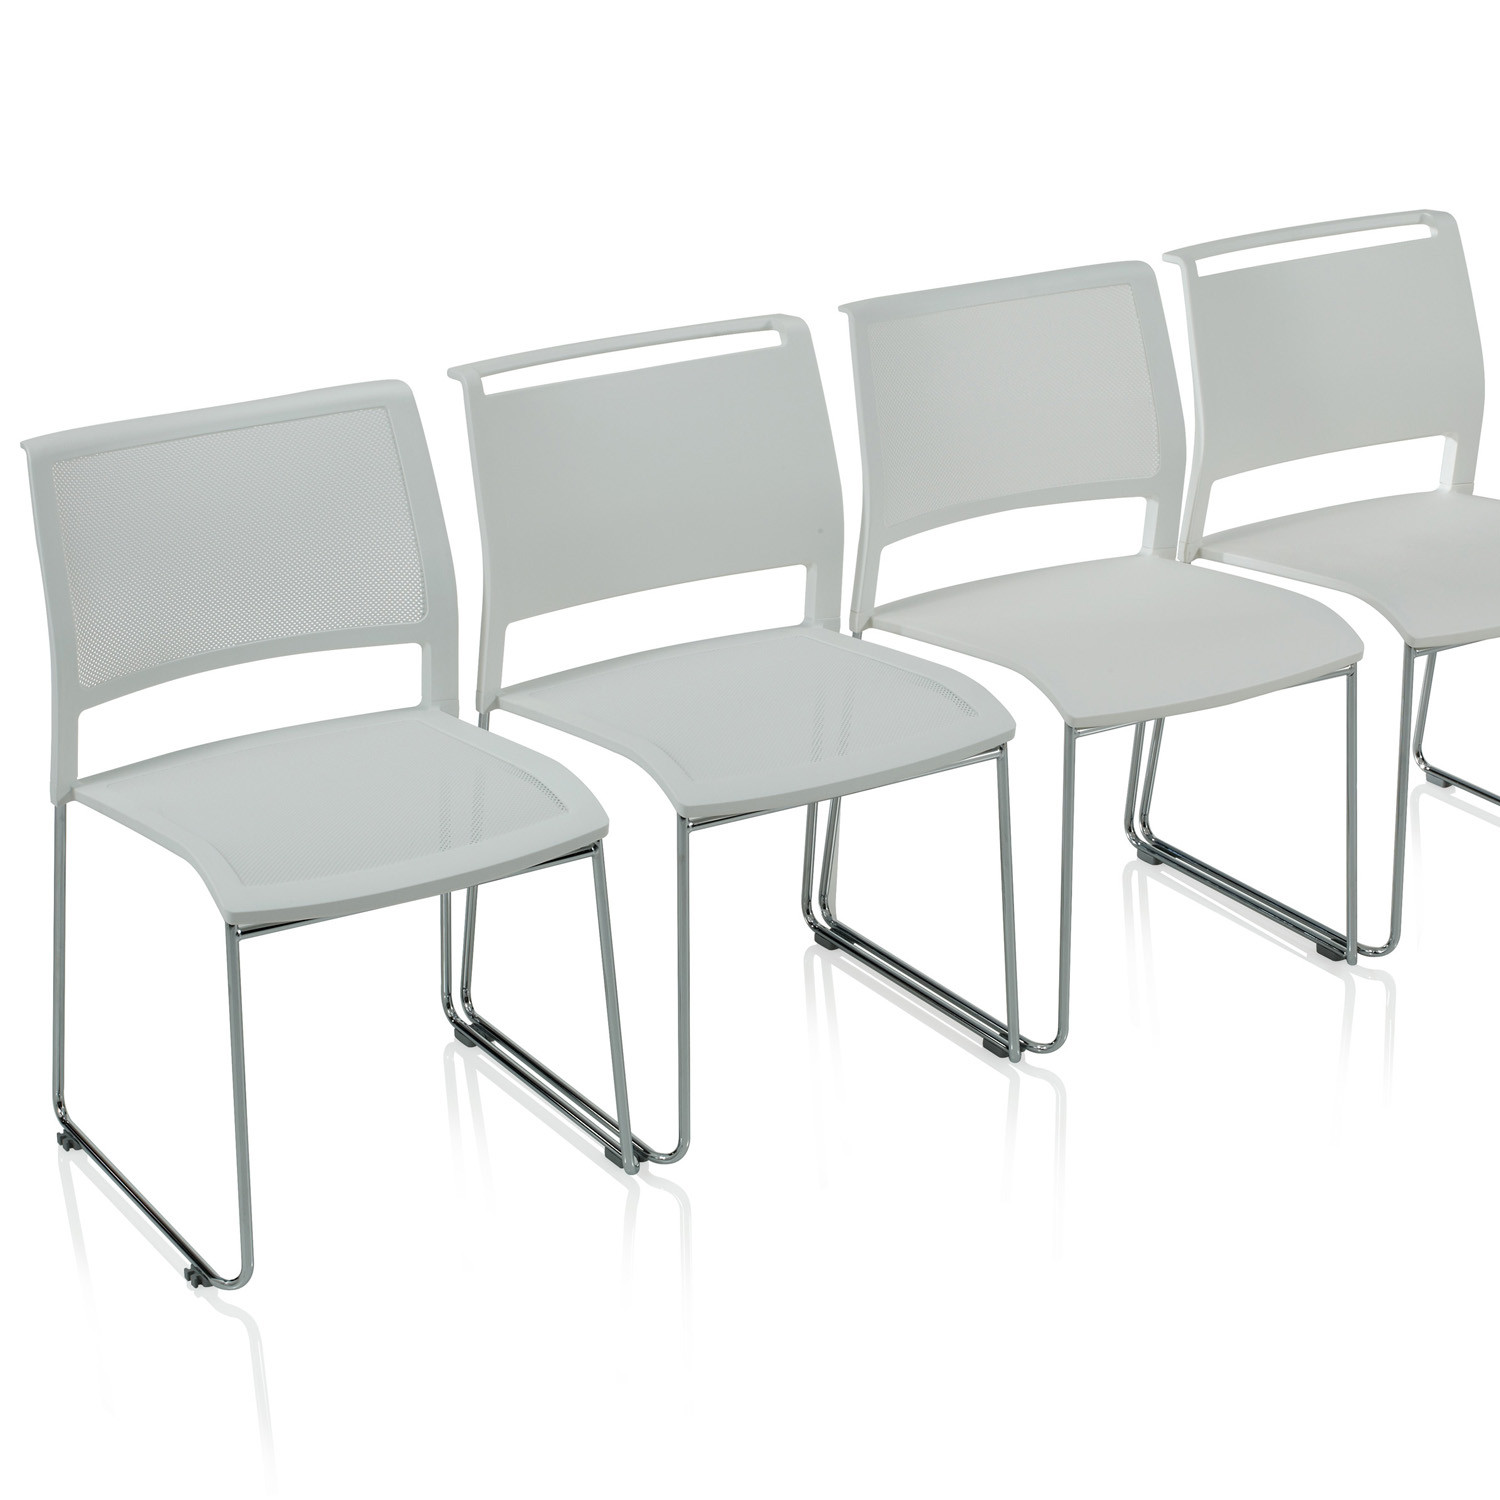 Opt4 Visitors Chairs by KI